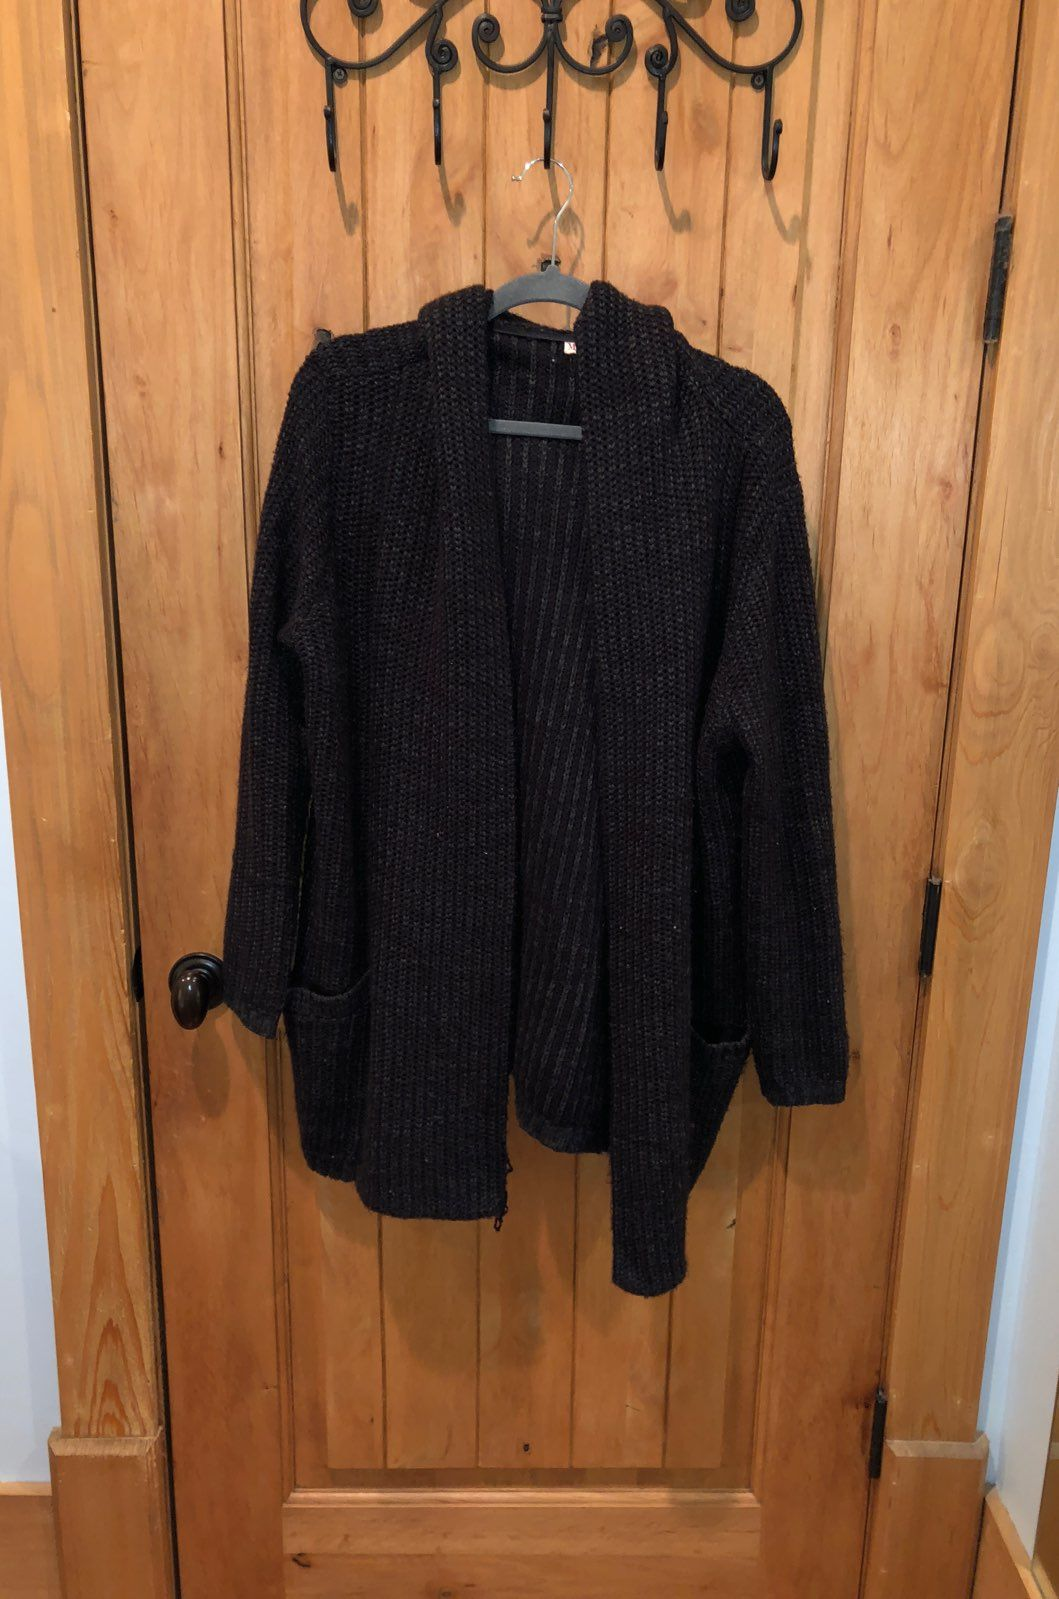 Black Sweater Coat Cardigan - Mercari: BUY & SELL THINGS YOU LOVE